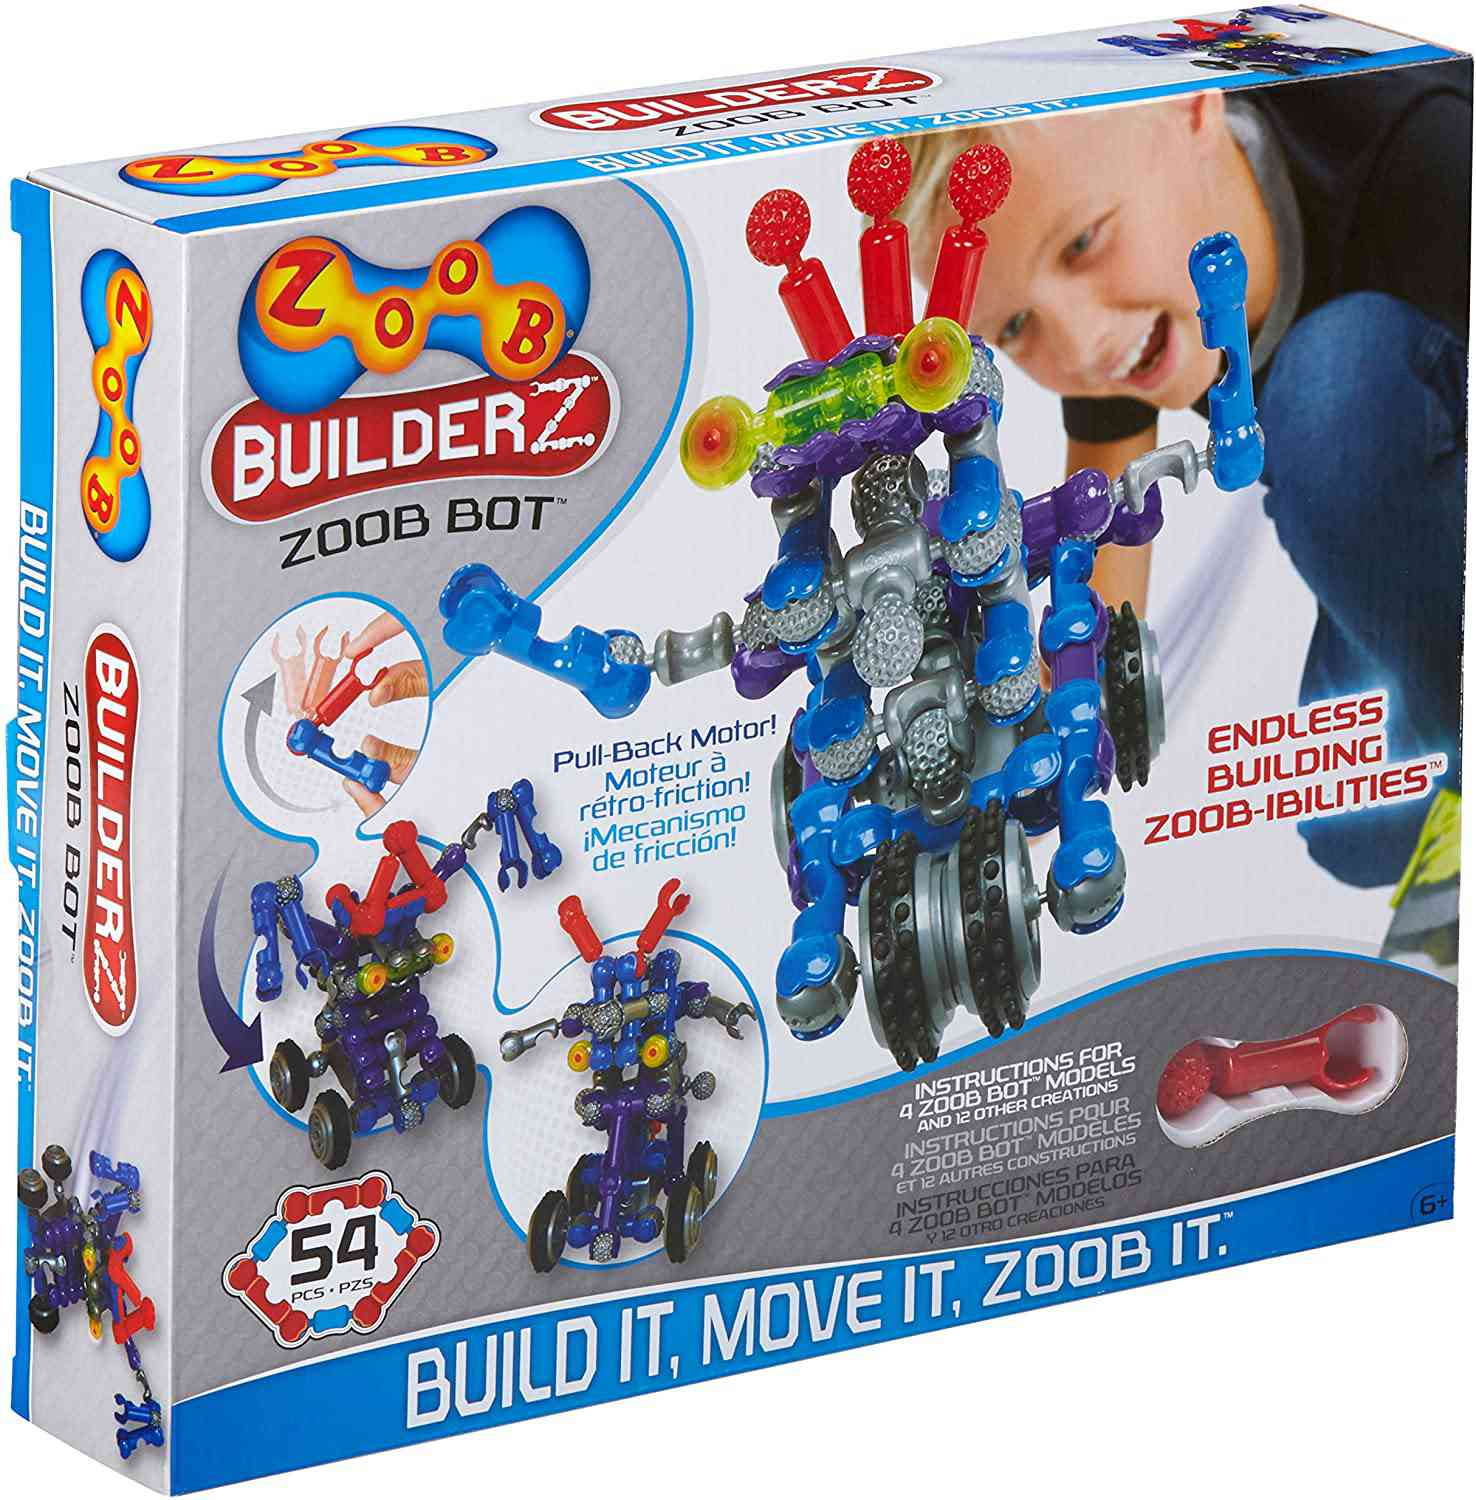 ZOOB BuilderZ ZOOB Bot Moving Building Modeling System